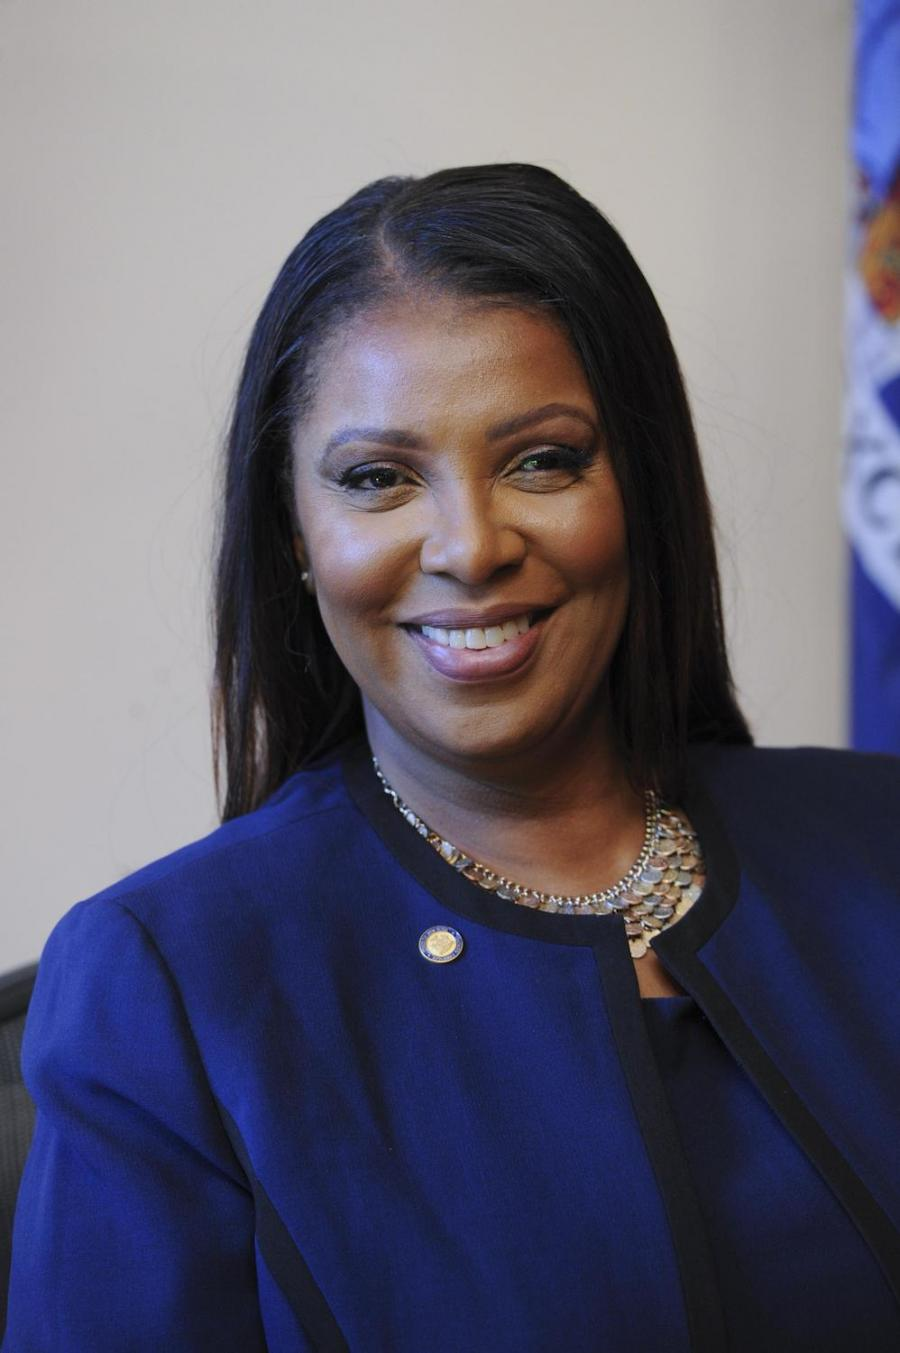 portrait - New York State Attorney General Letitia James